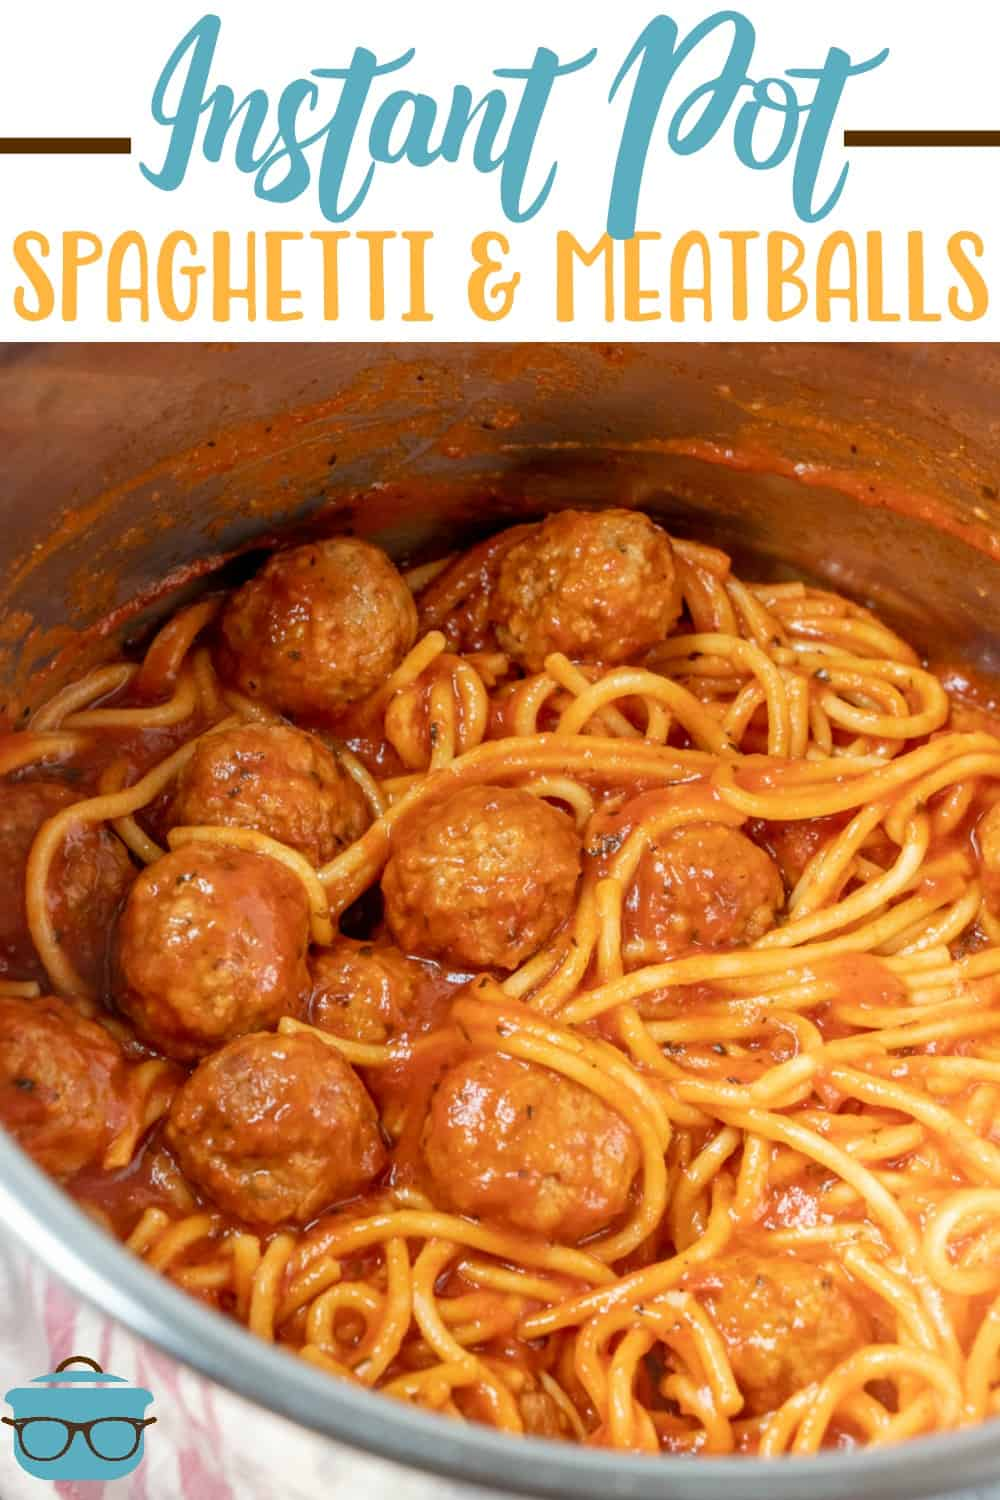 Instant Pot Spaghetti and Meatballs recipe from The Country Cook